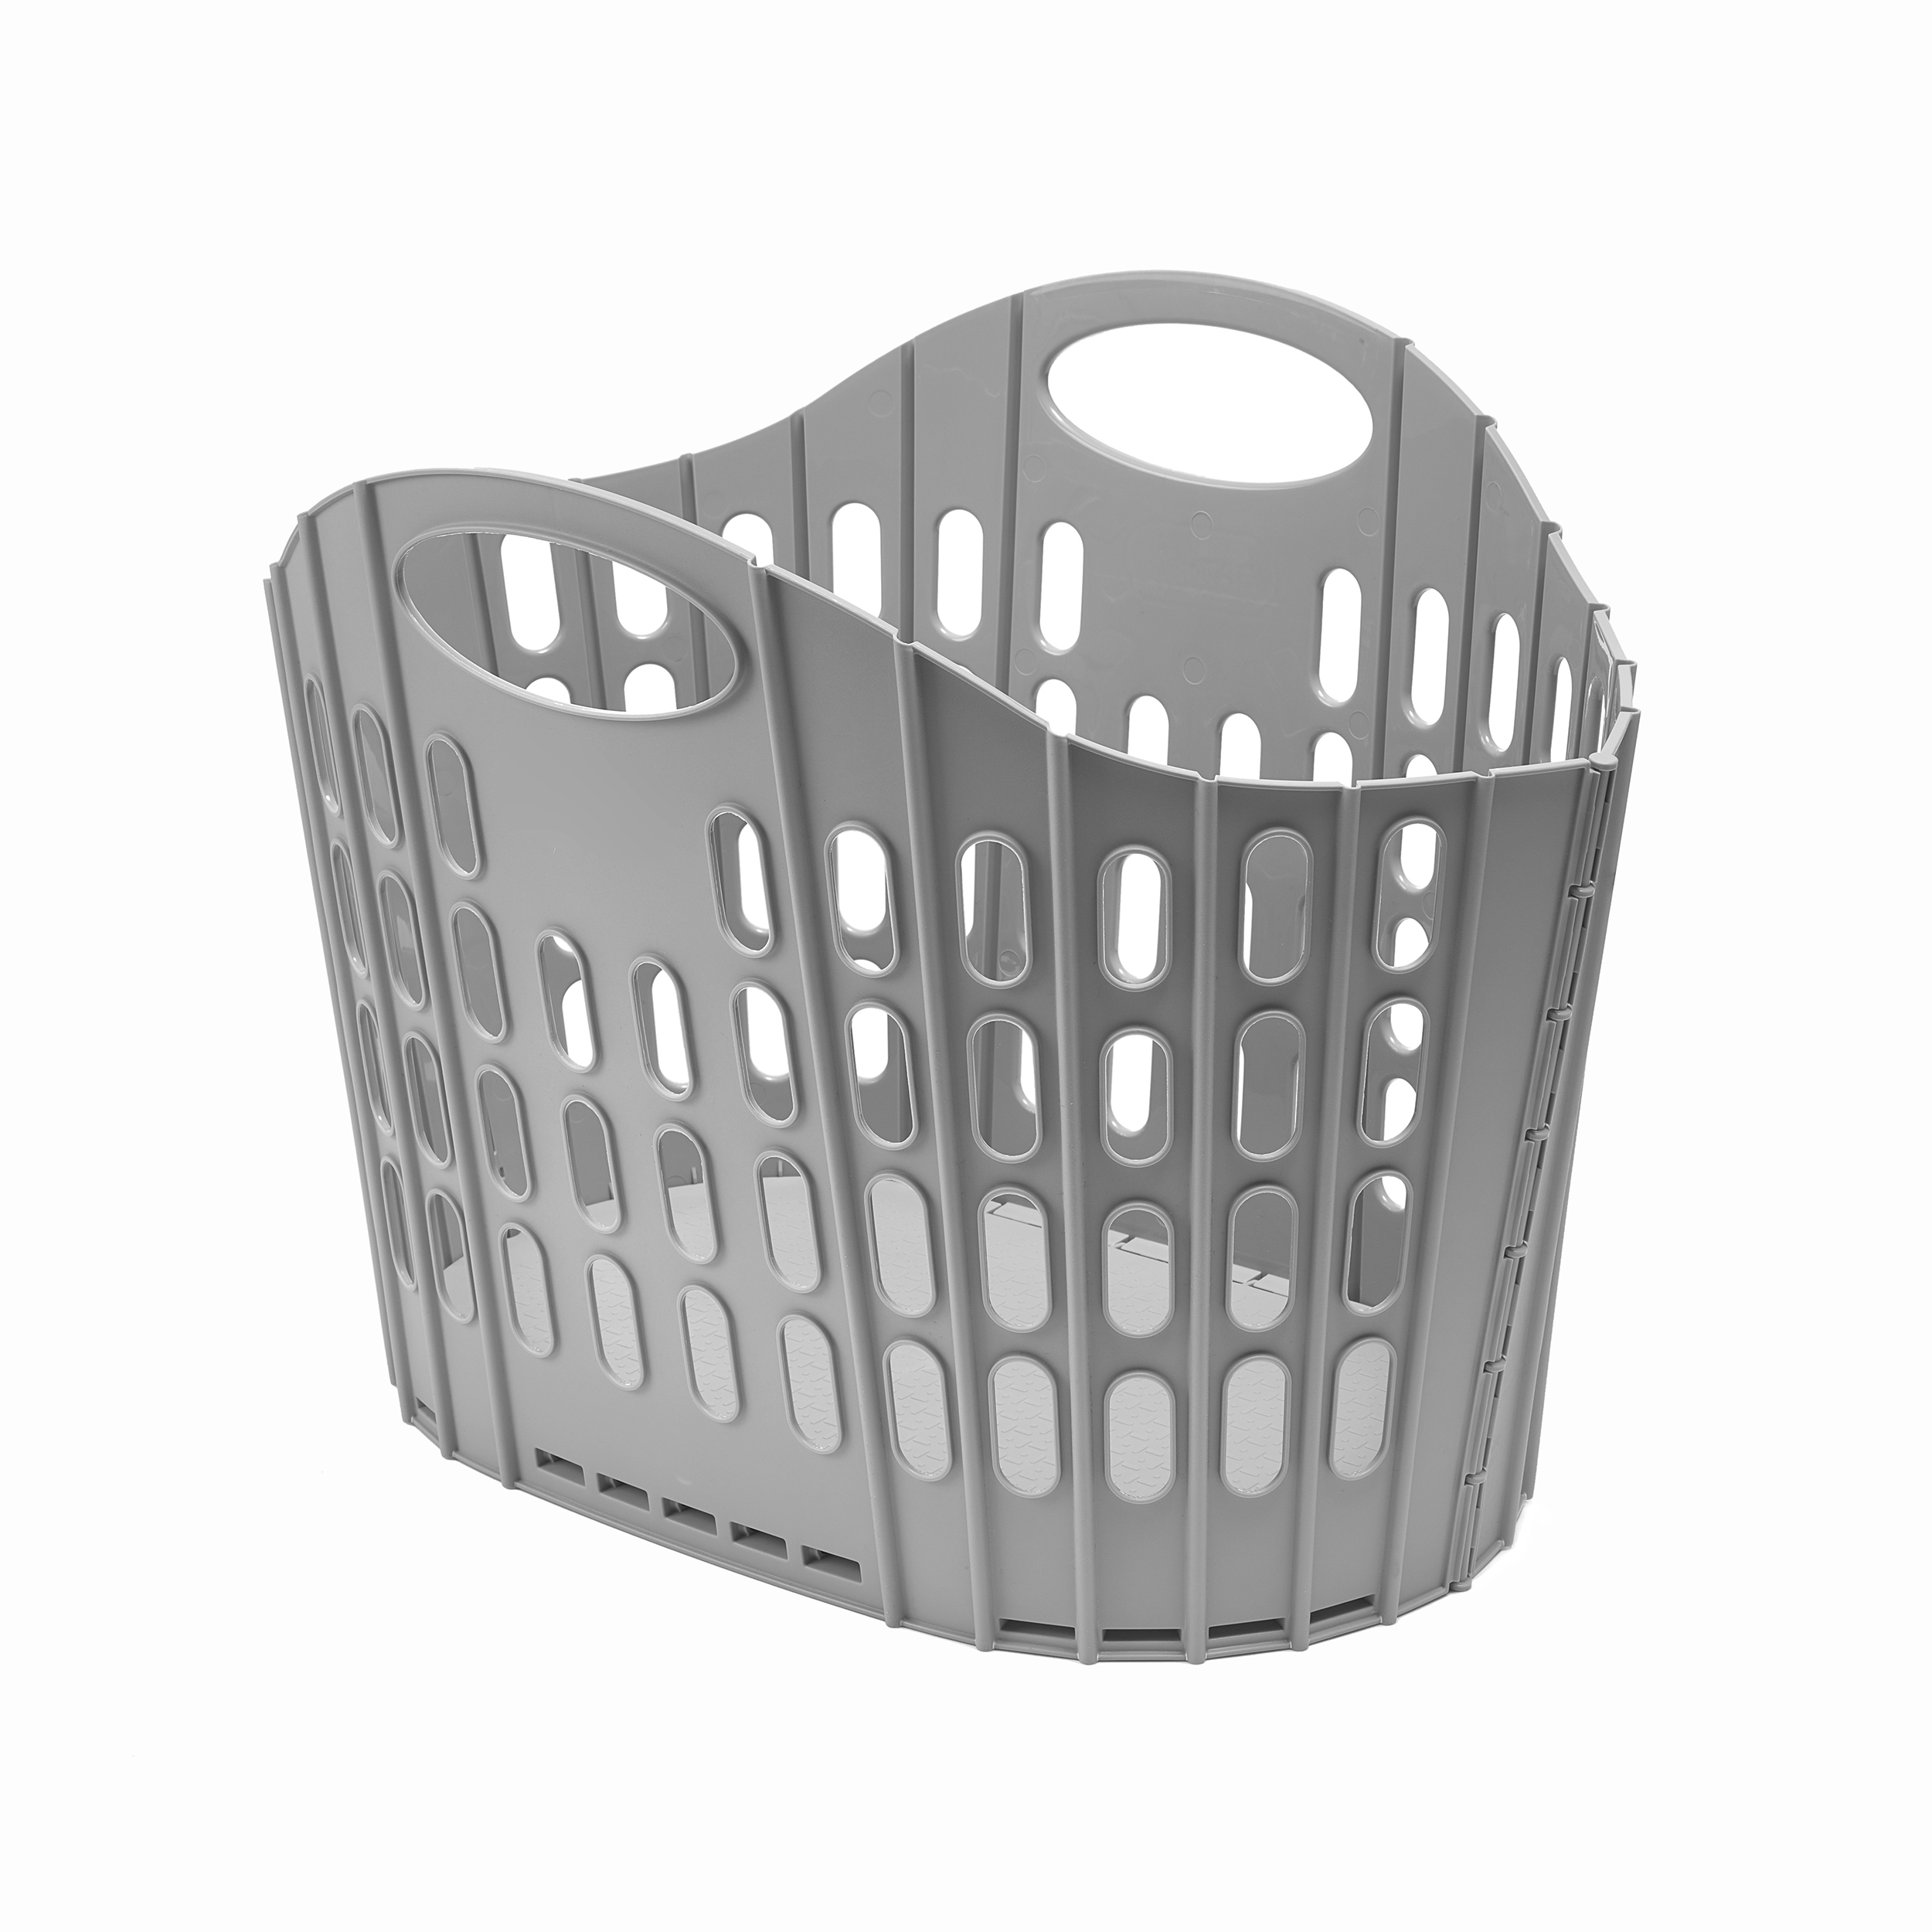 Laundry Basket Addis Fold Flat Large 38 Litre Laundry Basket Ref 518163